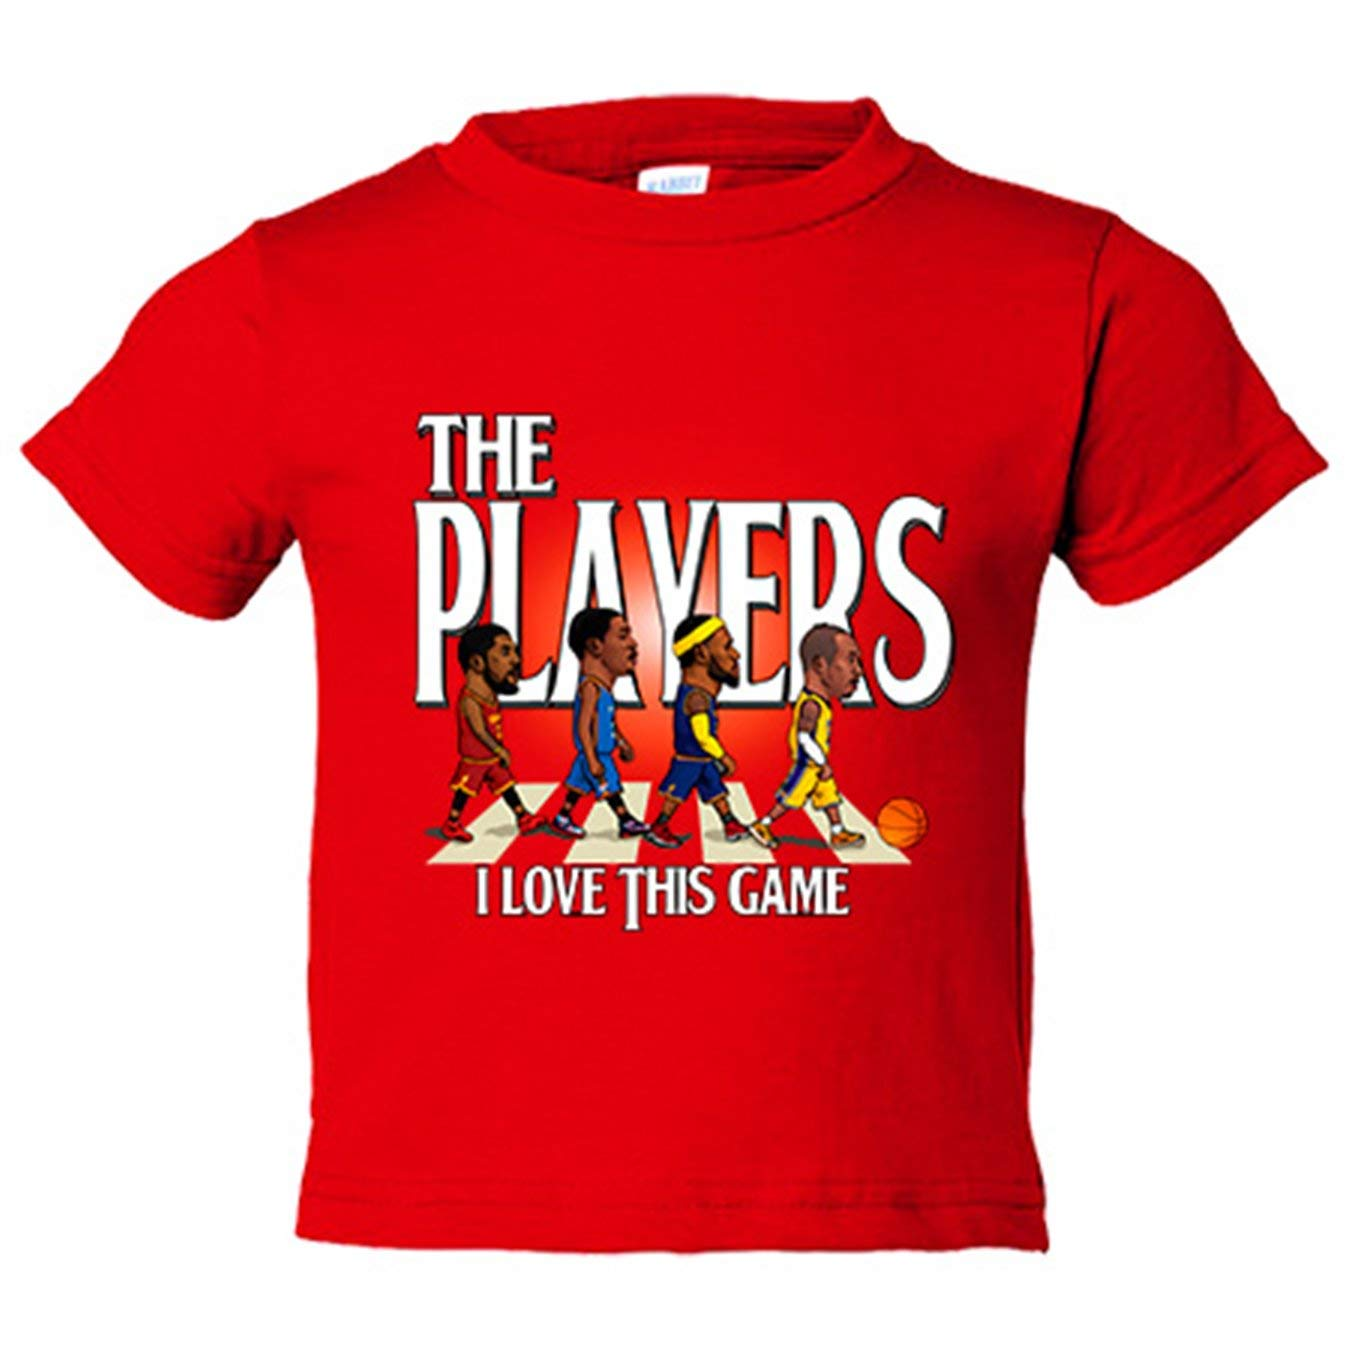 Camiseta niño The Players NBA I Love This Game Basket - Azul Royal, 3-4 años: Amazon.es: Bebé